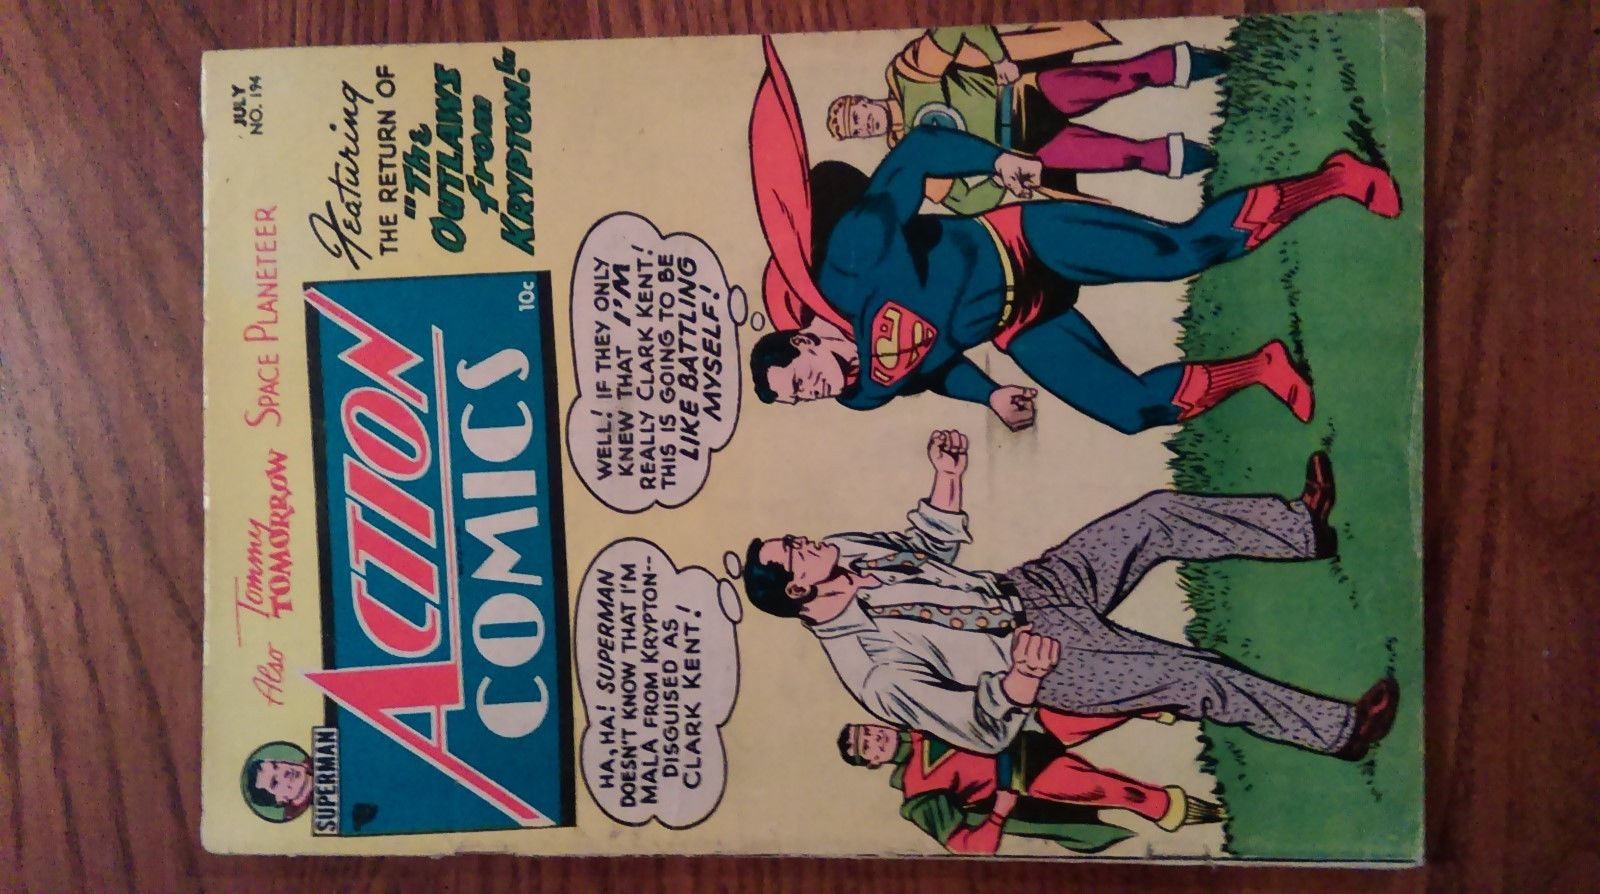 ACTION COMICS # 194  SUPERMAN - DC GOLDEN AGE - CHECK PHOTOS - MAKE OFFER